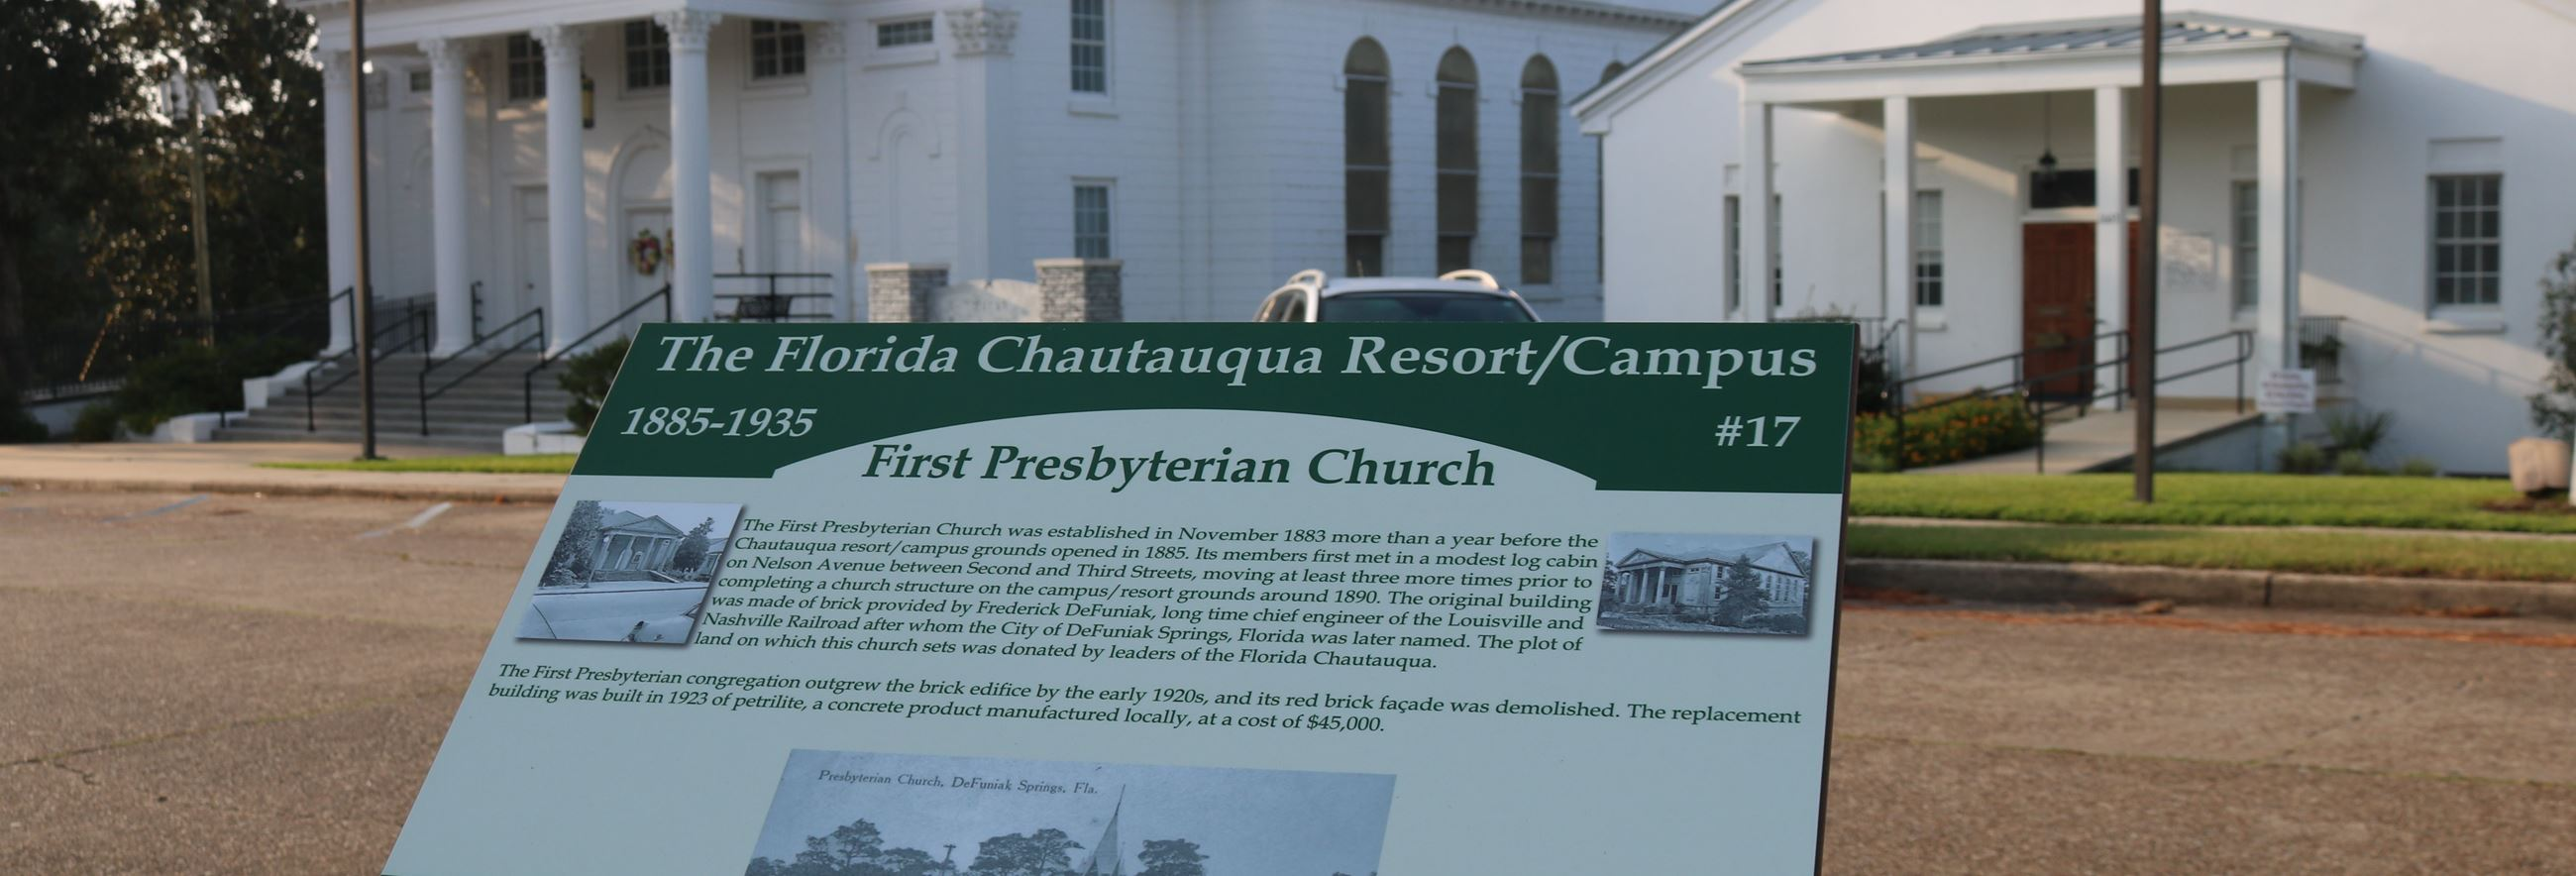 information panel in front of a large white stone church